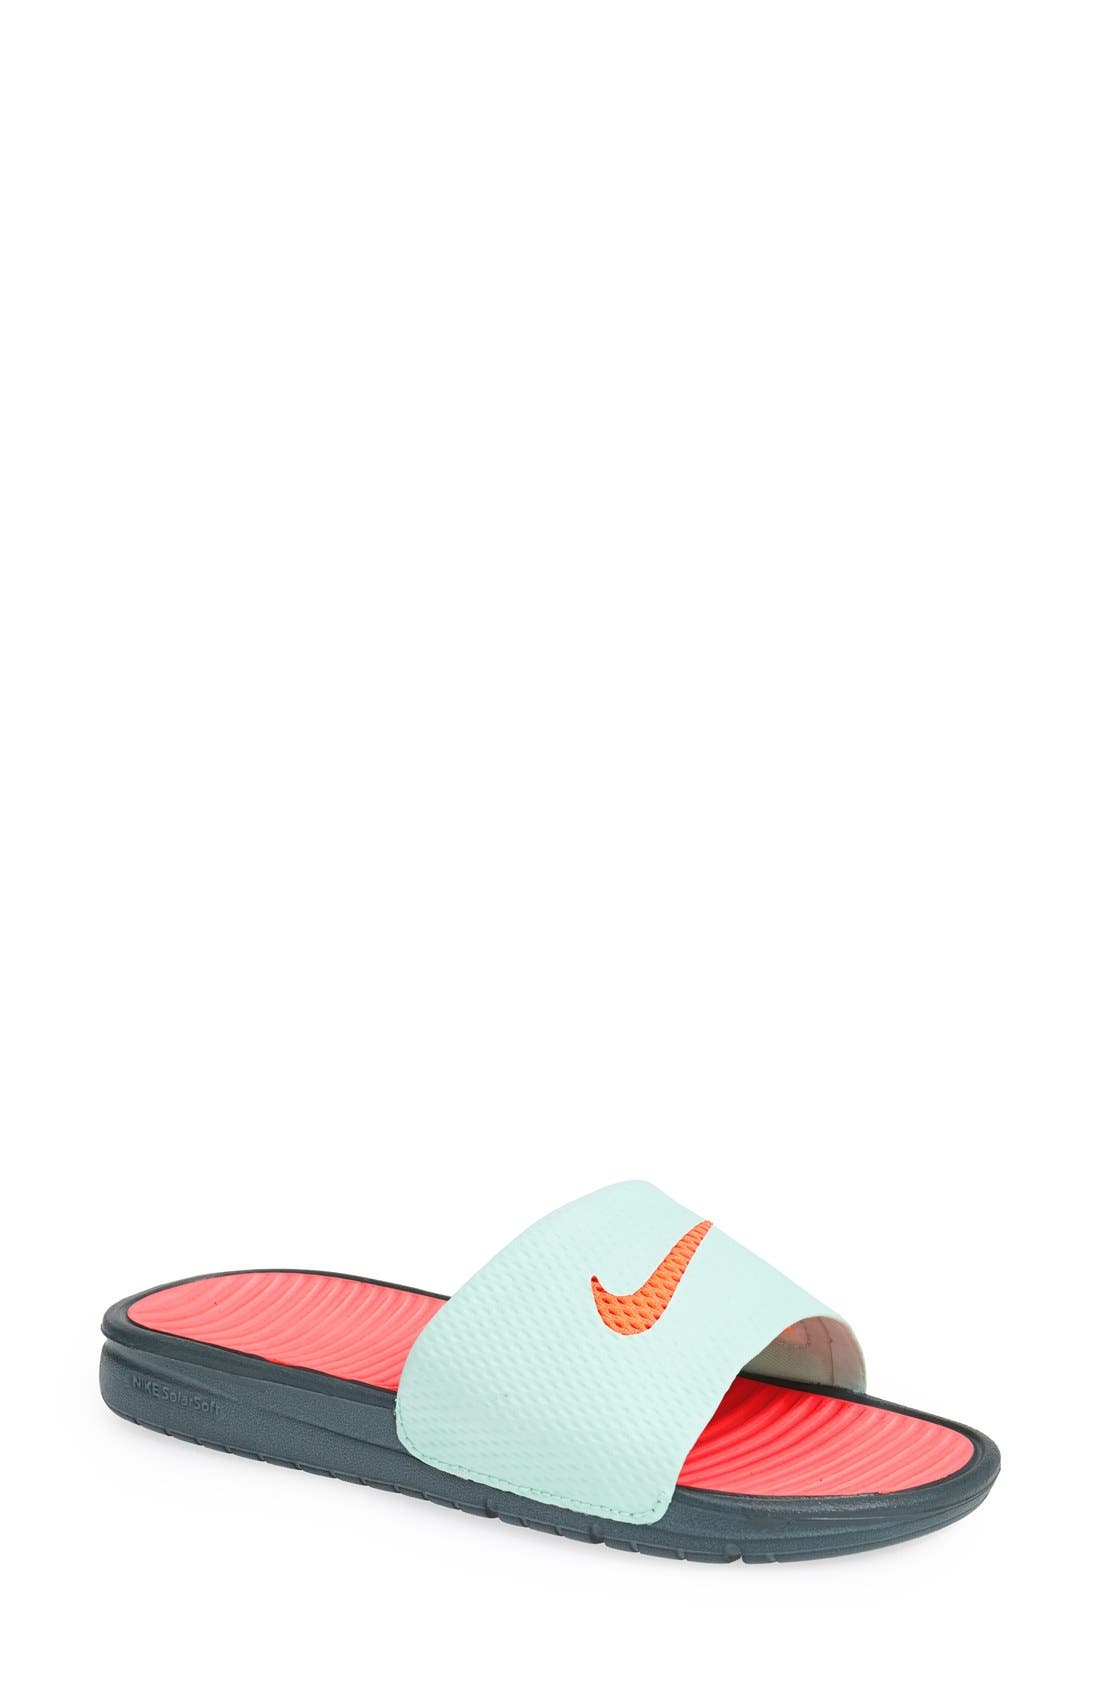 Alternate Image 1 Selected - Nike 'Benassi - Solarsoft' Slide Sandal (Women)